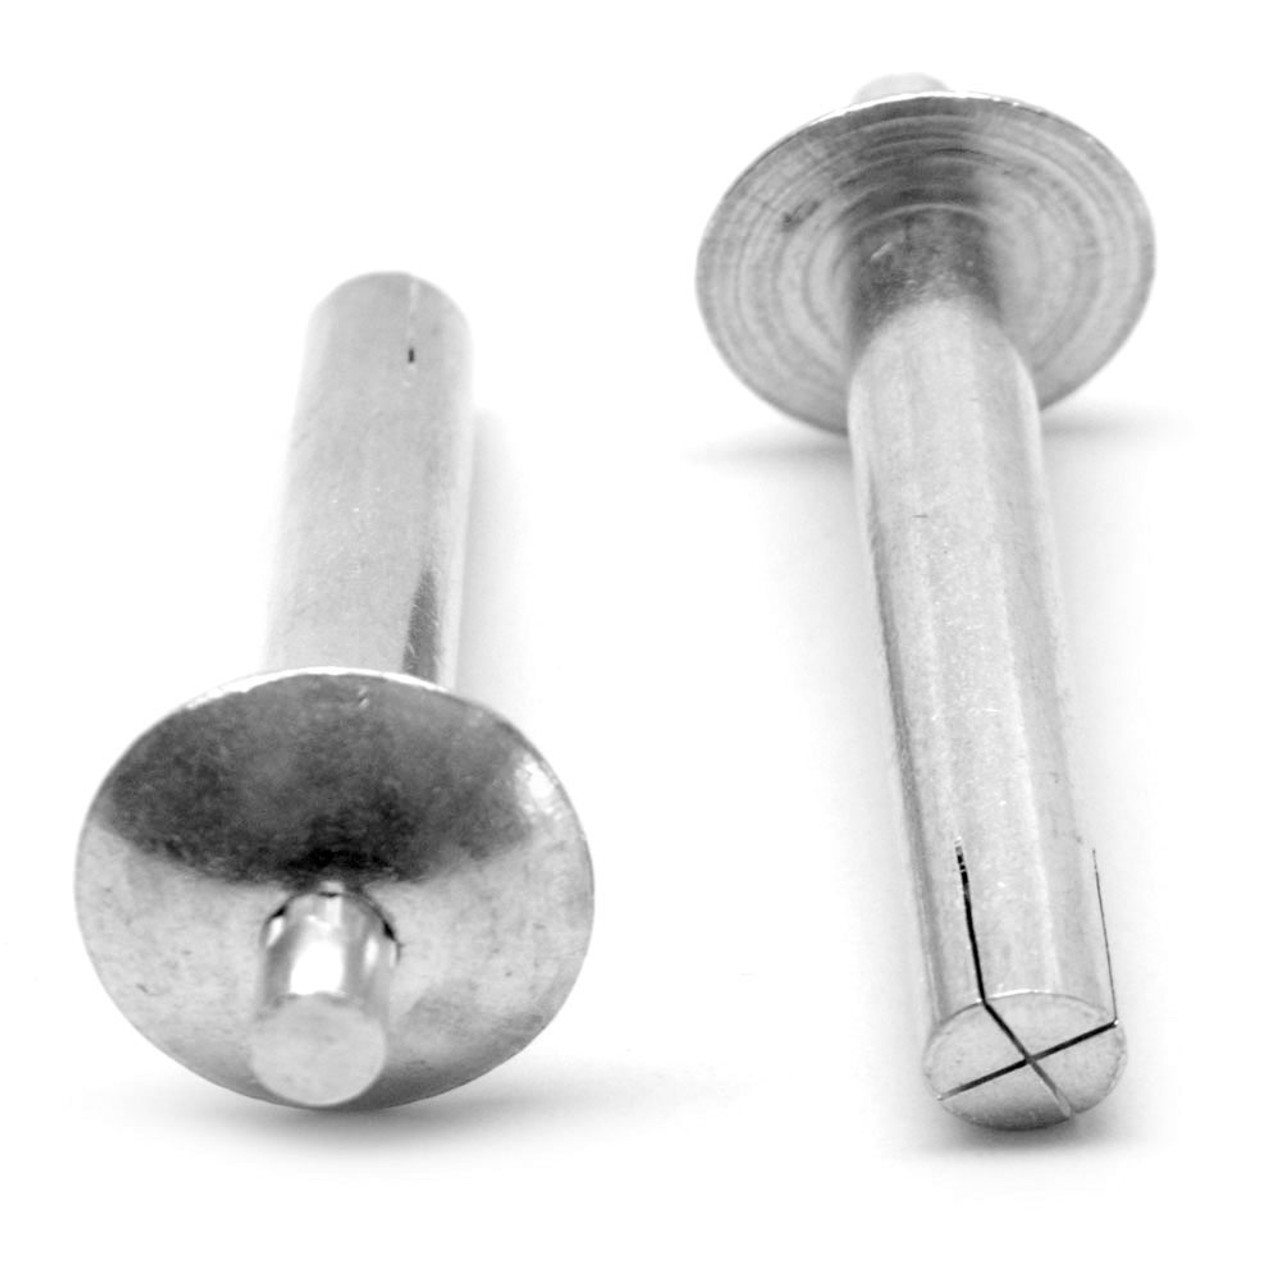 1/4 x 9/16 Drive Pin Rivet Brazier Head with Stainless Pin Aluminum